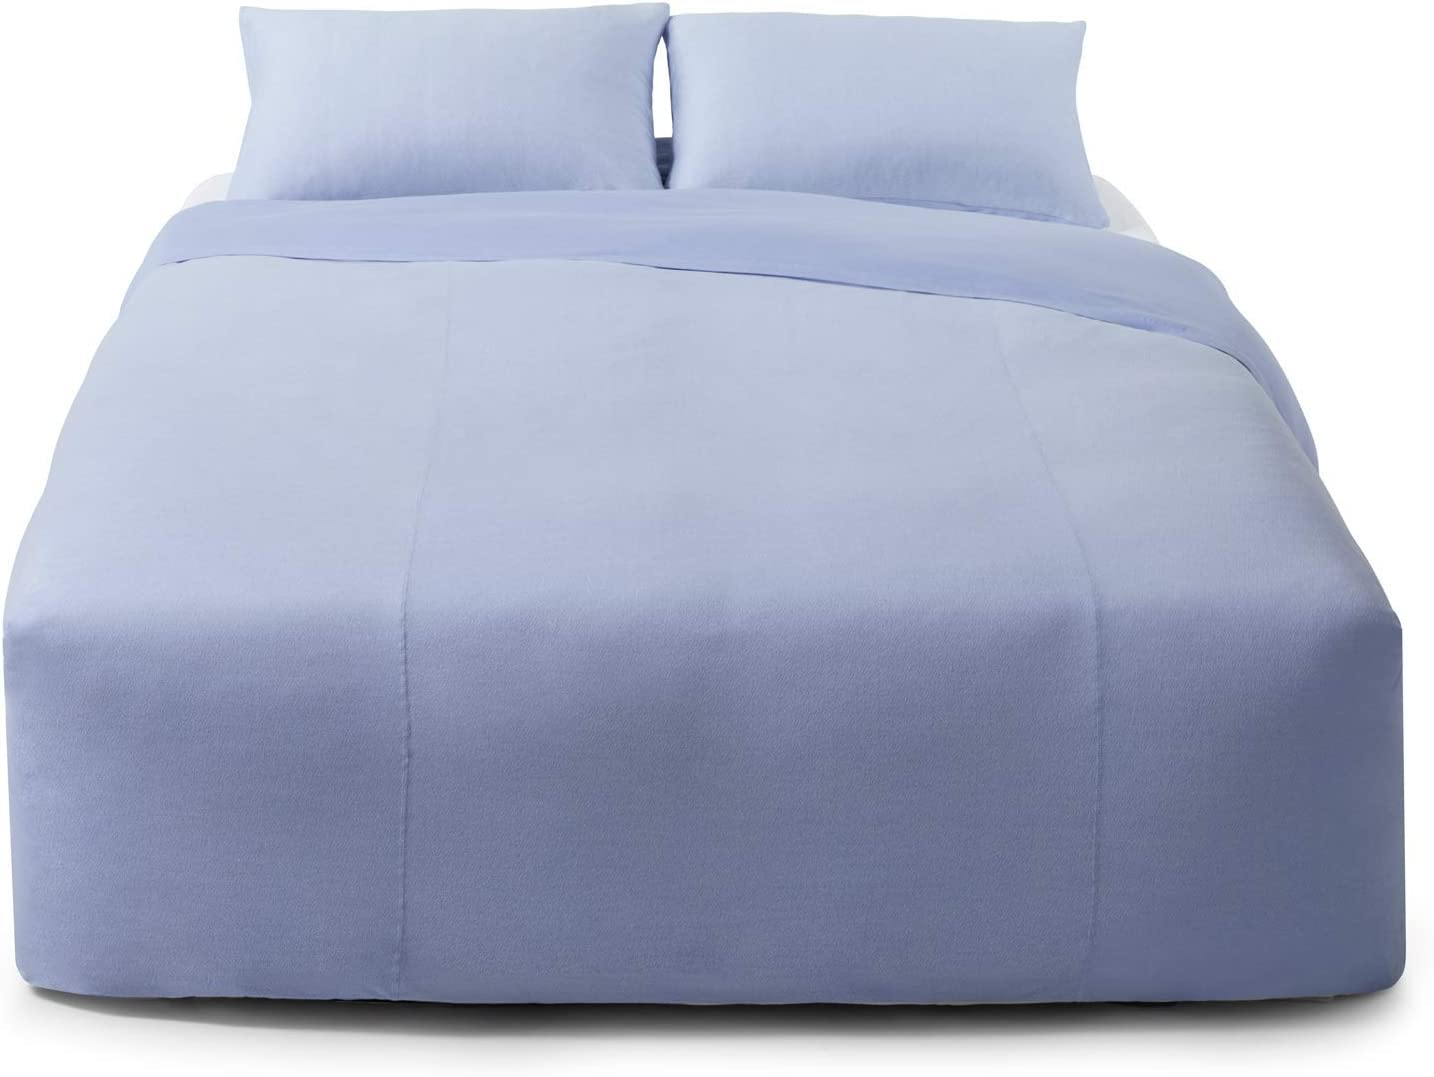 Calvin Klein Home Modern Cotton Ray Duvet, King, Periwinkle/Cream